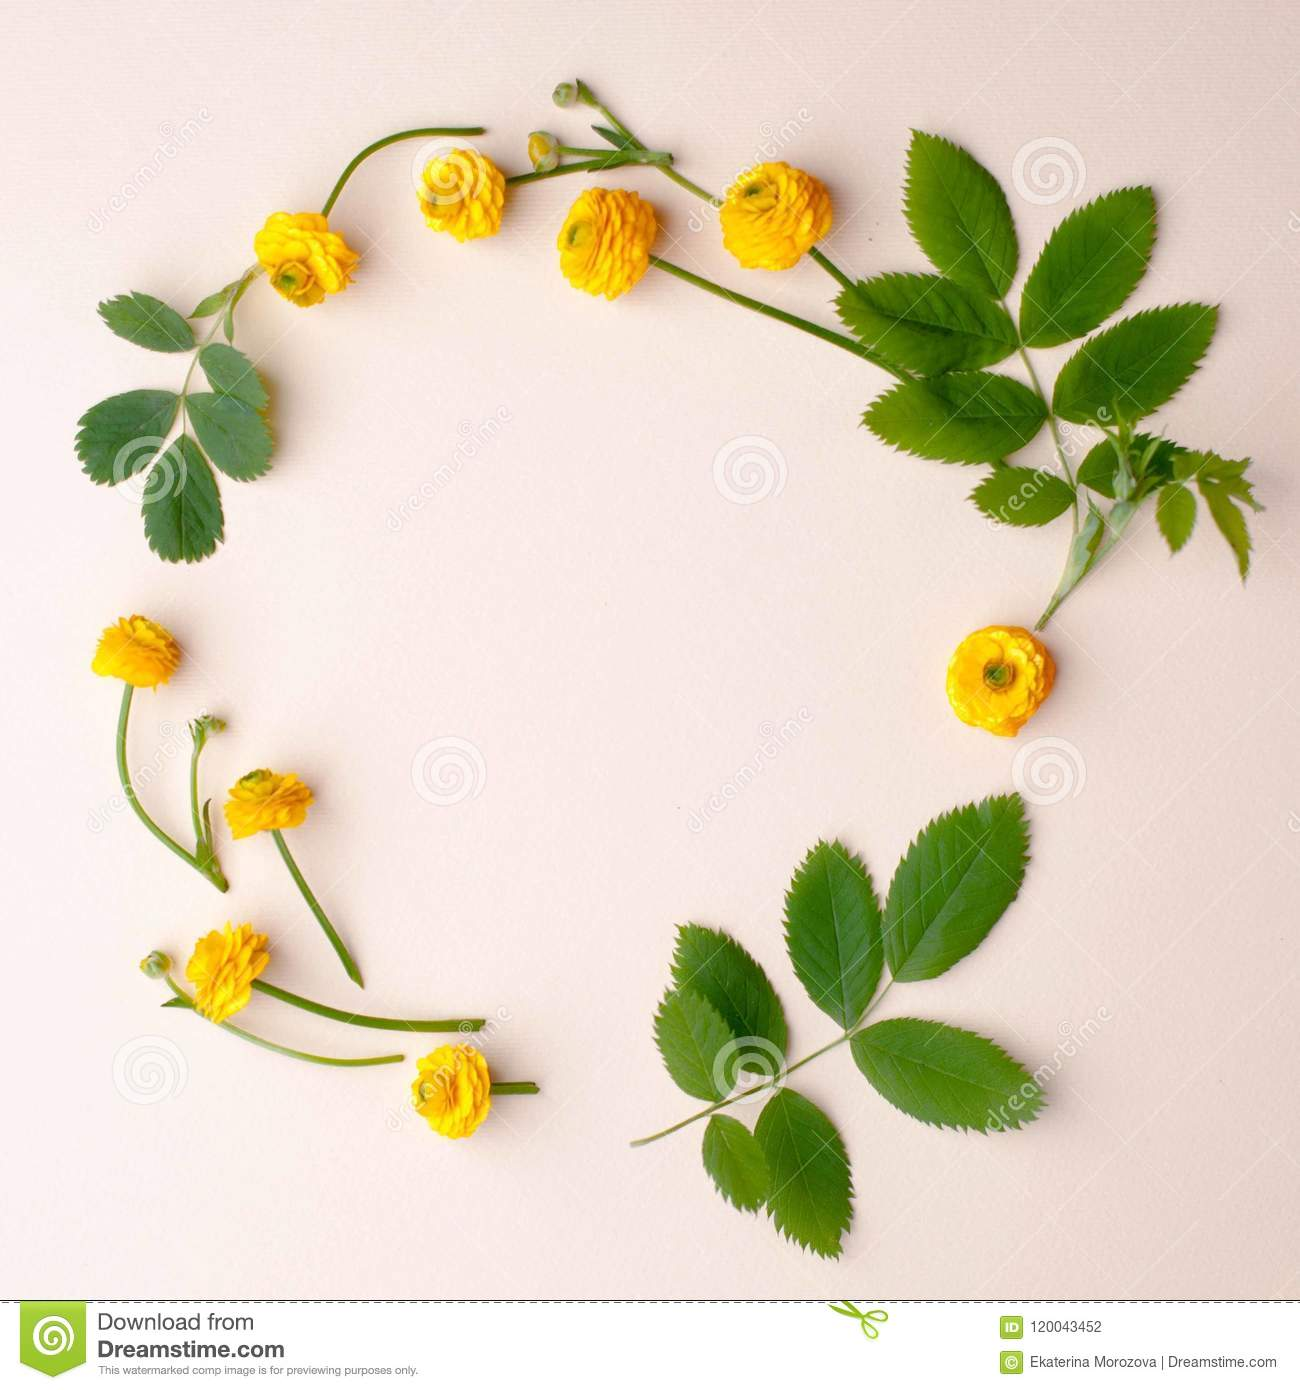 Flowers composition wreath made of various yellow flowers and green flowers composition wreath made of various yellow flowers and green leaves and branches on pastel mightylinksfo